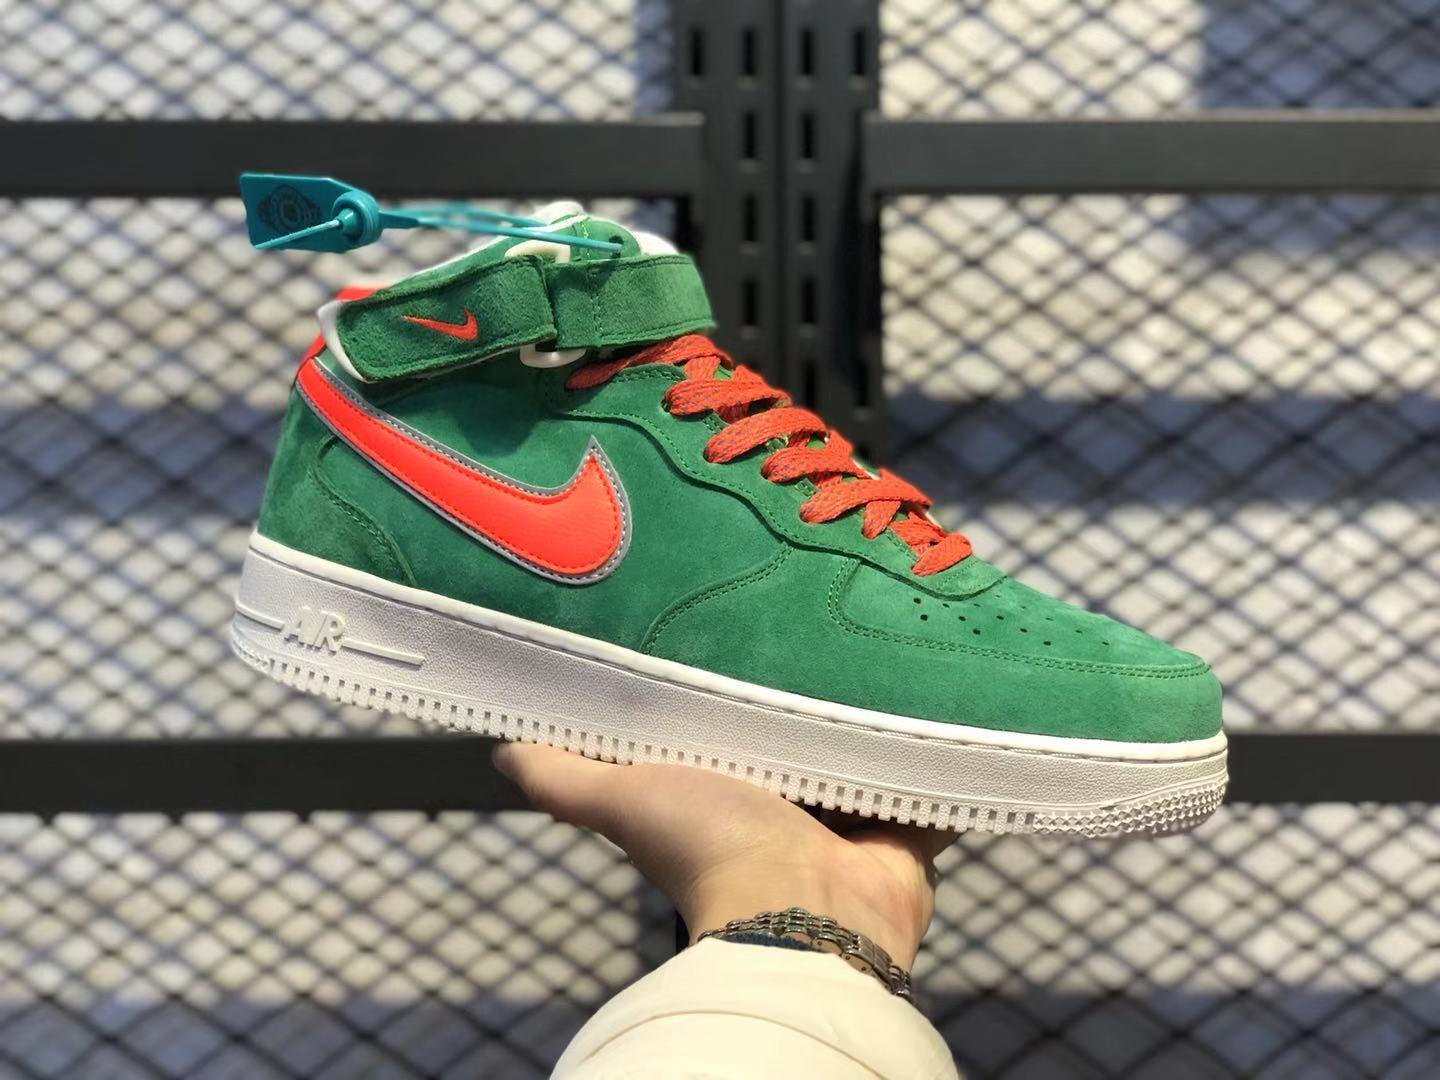 Nike Air Force 1 Mid Green/Orange-White Casual Sport Shoes In Stock AA1118-006